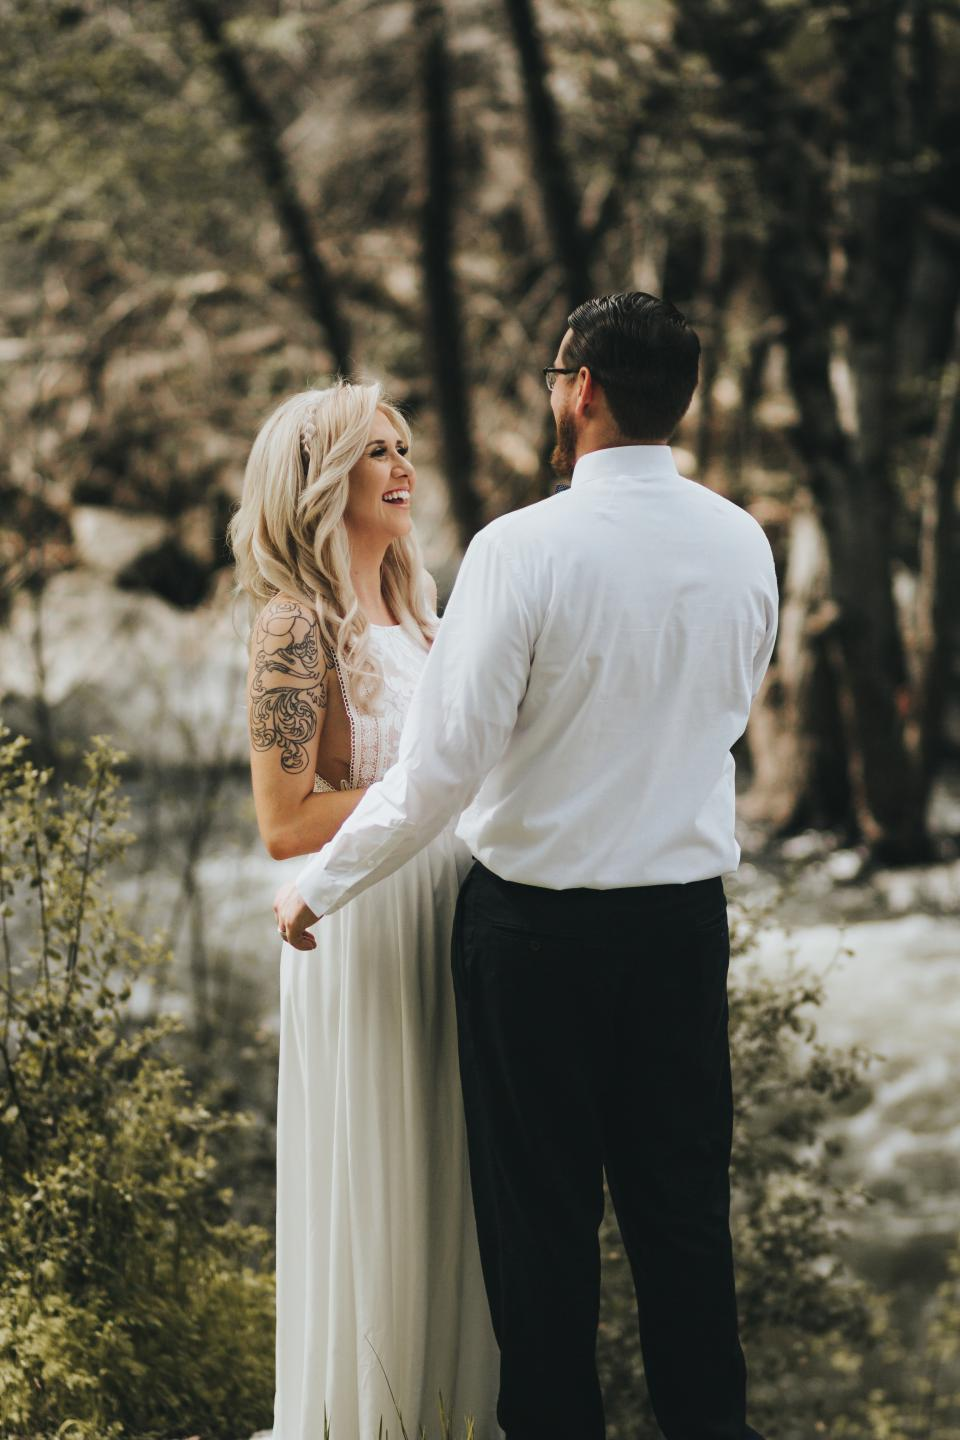 people, woman, man, guy, smile, happy, couple, love, tattoo, wedding, bride, groom, white, gown, blur, outdoor